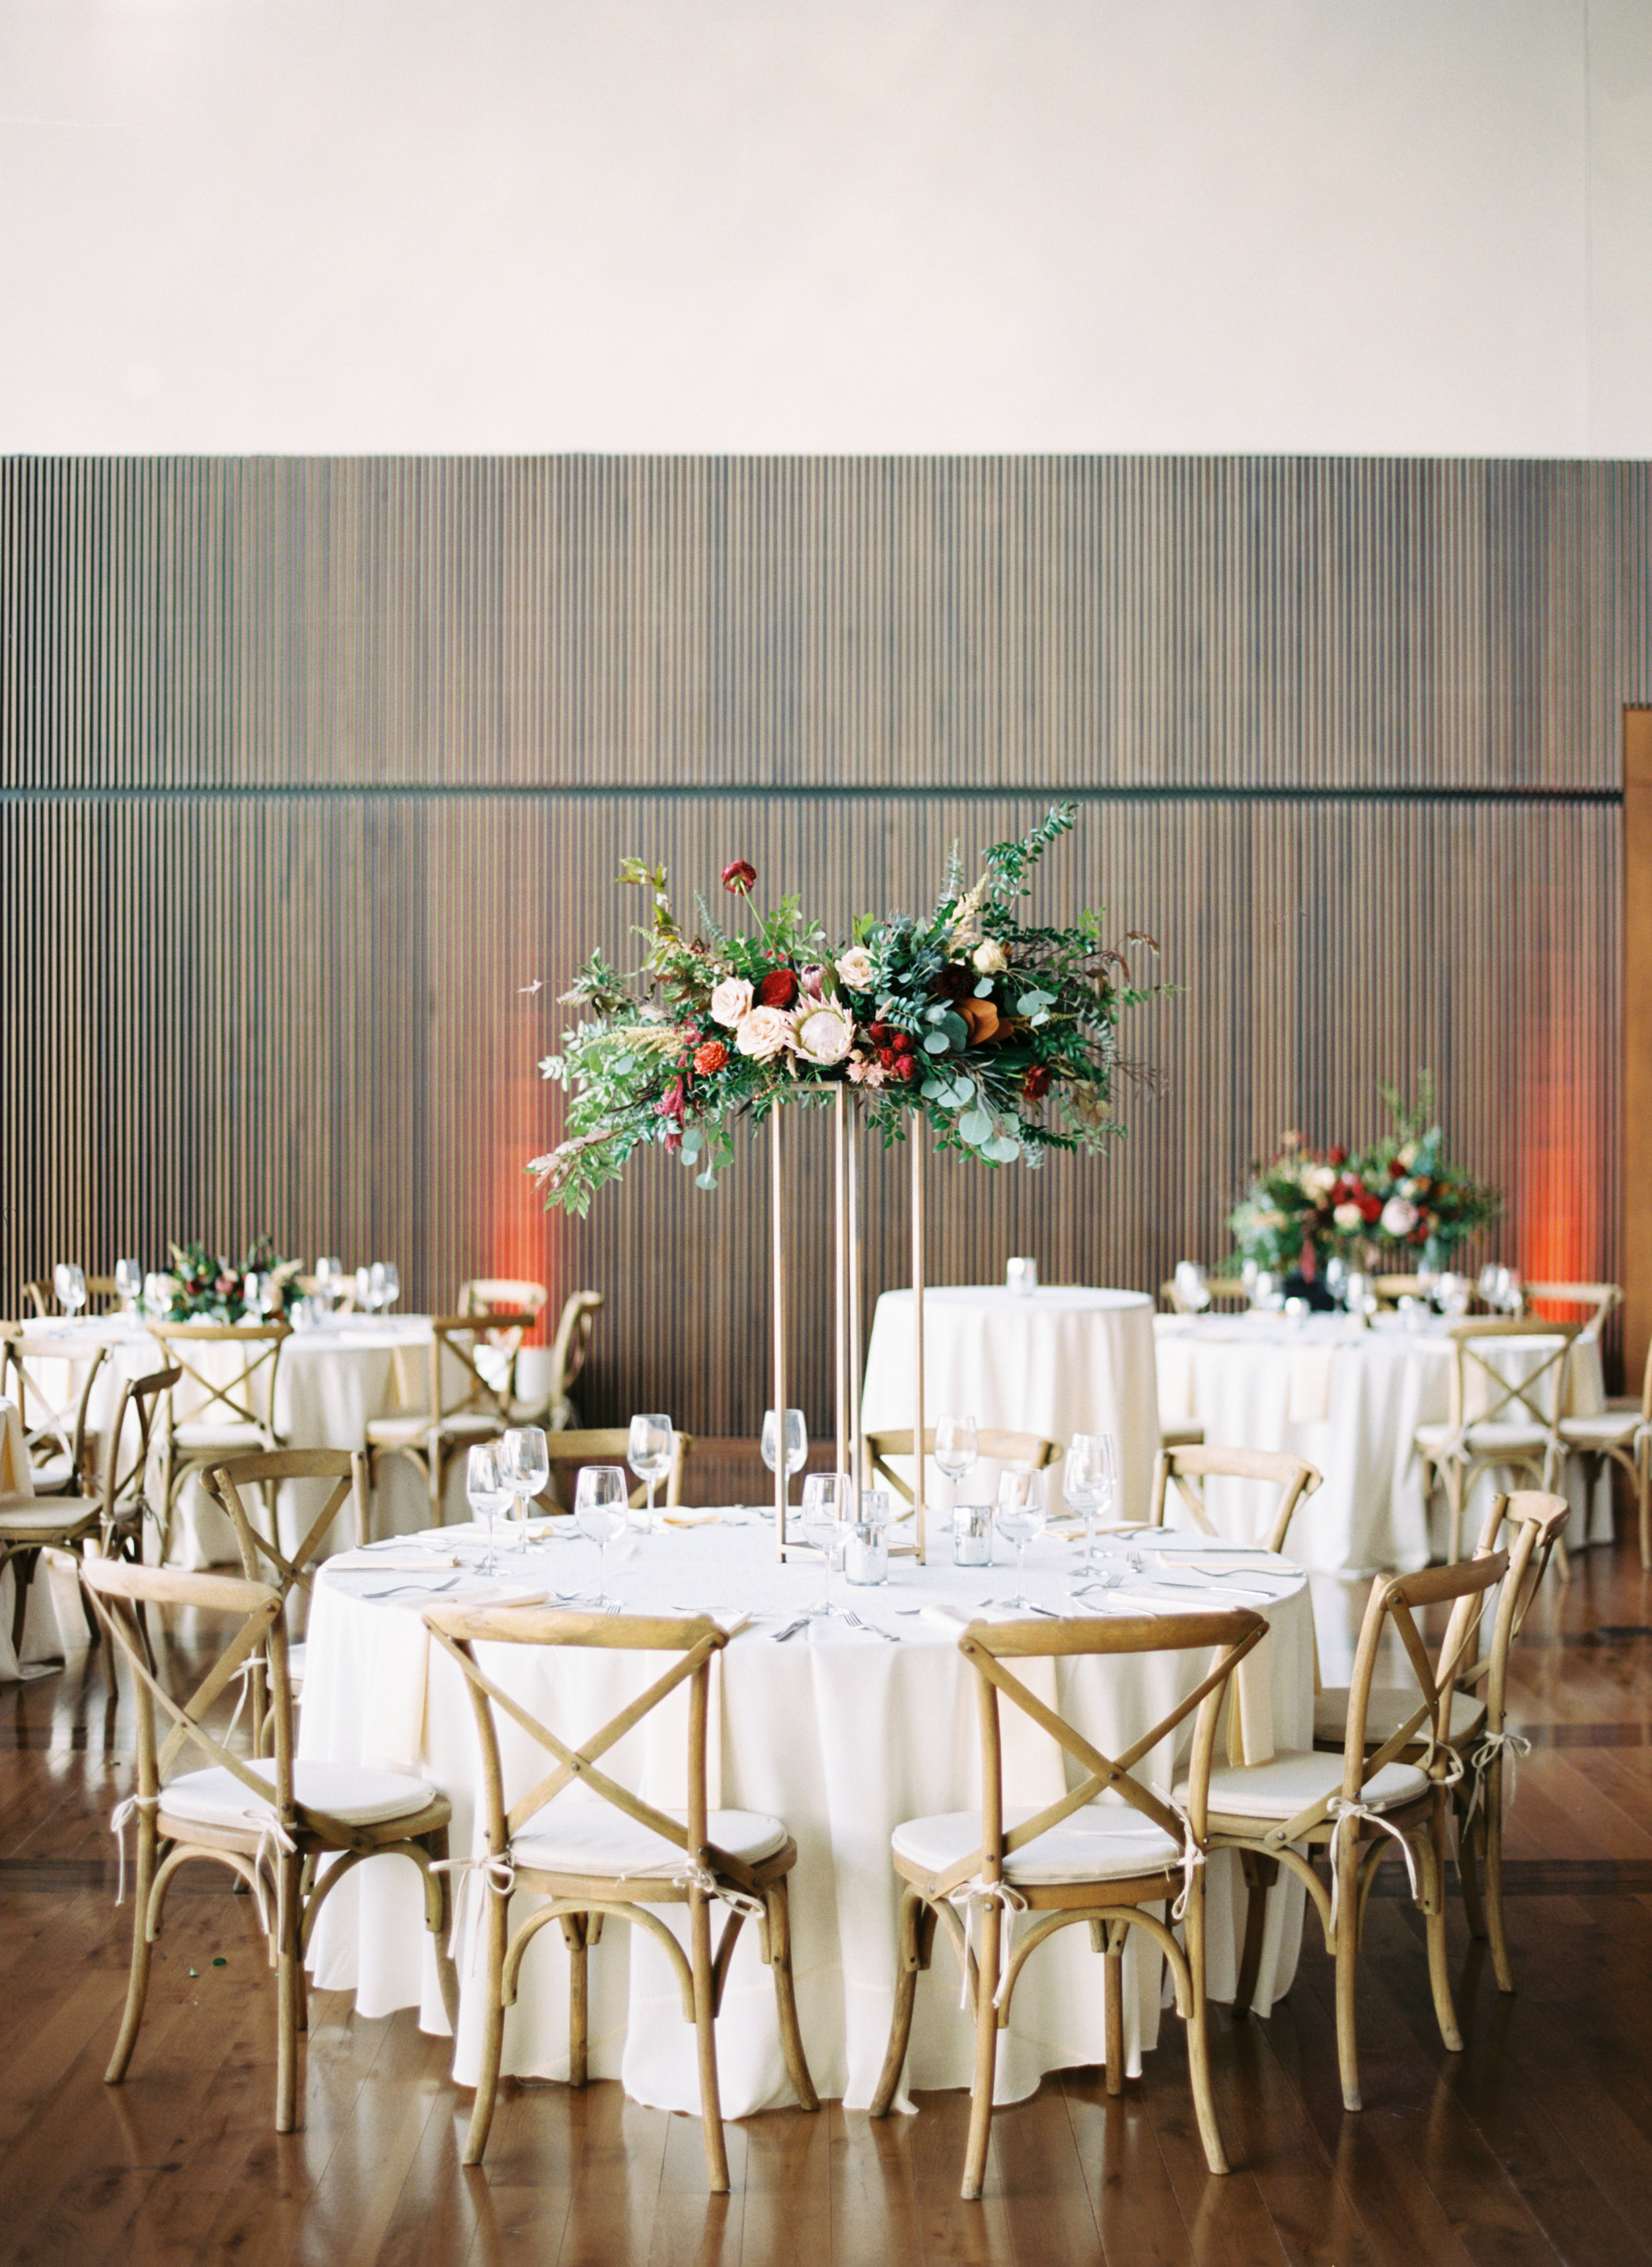 Blush and marsala centerpieces with protea, ranunculus, and lush greenery // Country Music Hall of Fame Wedding, Nashville